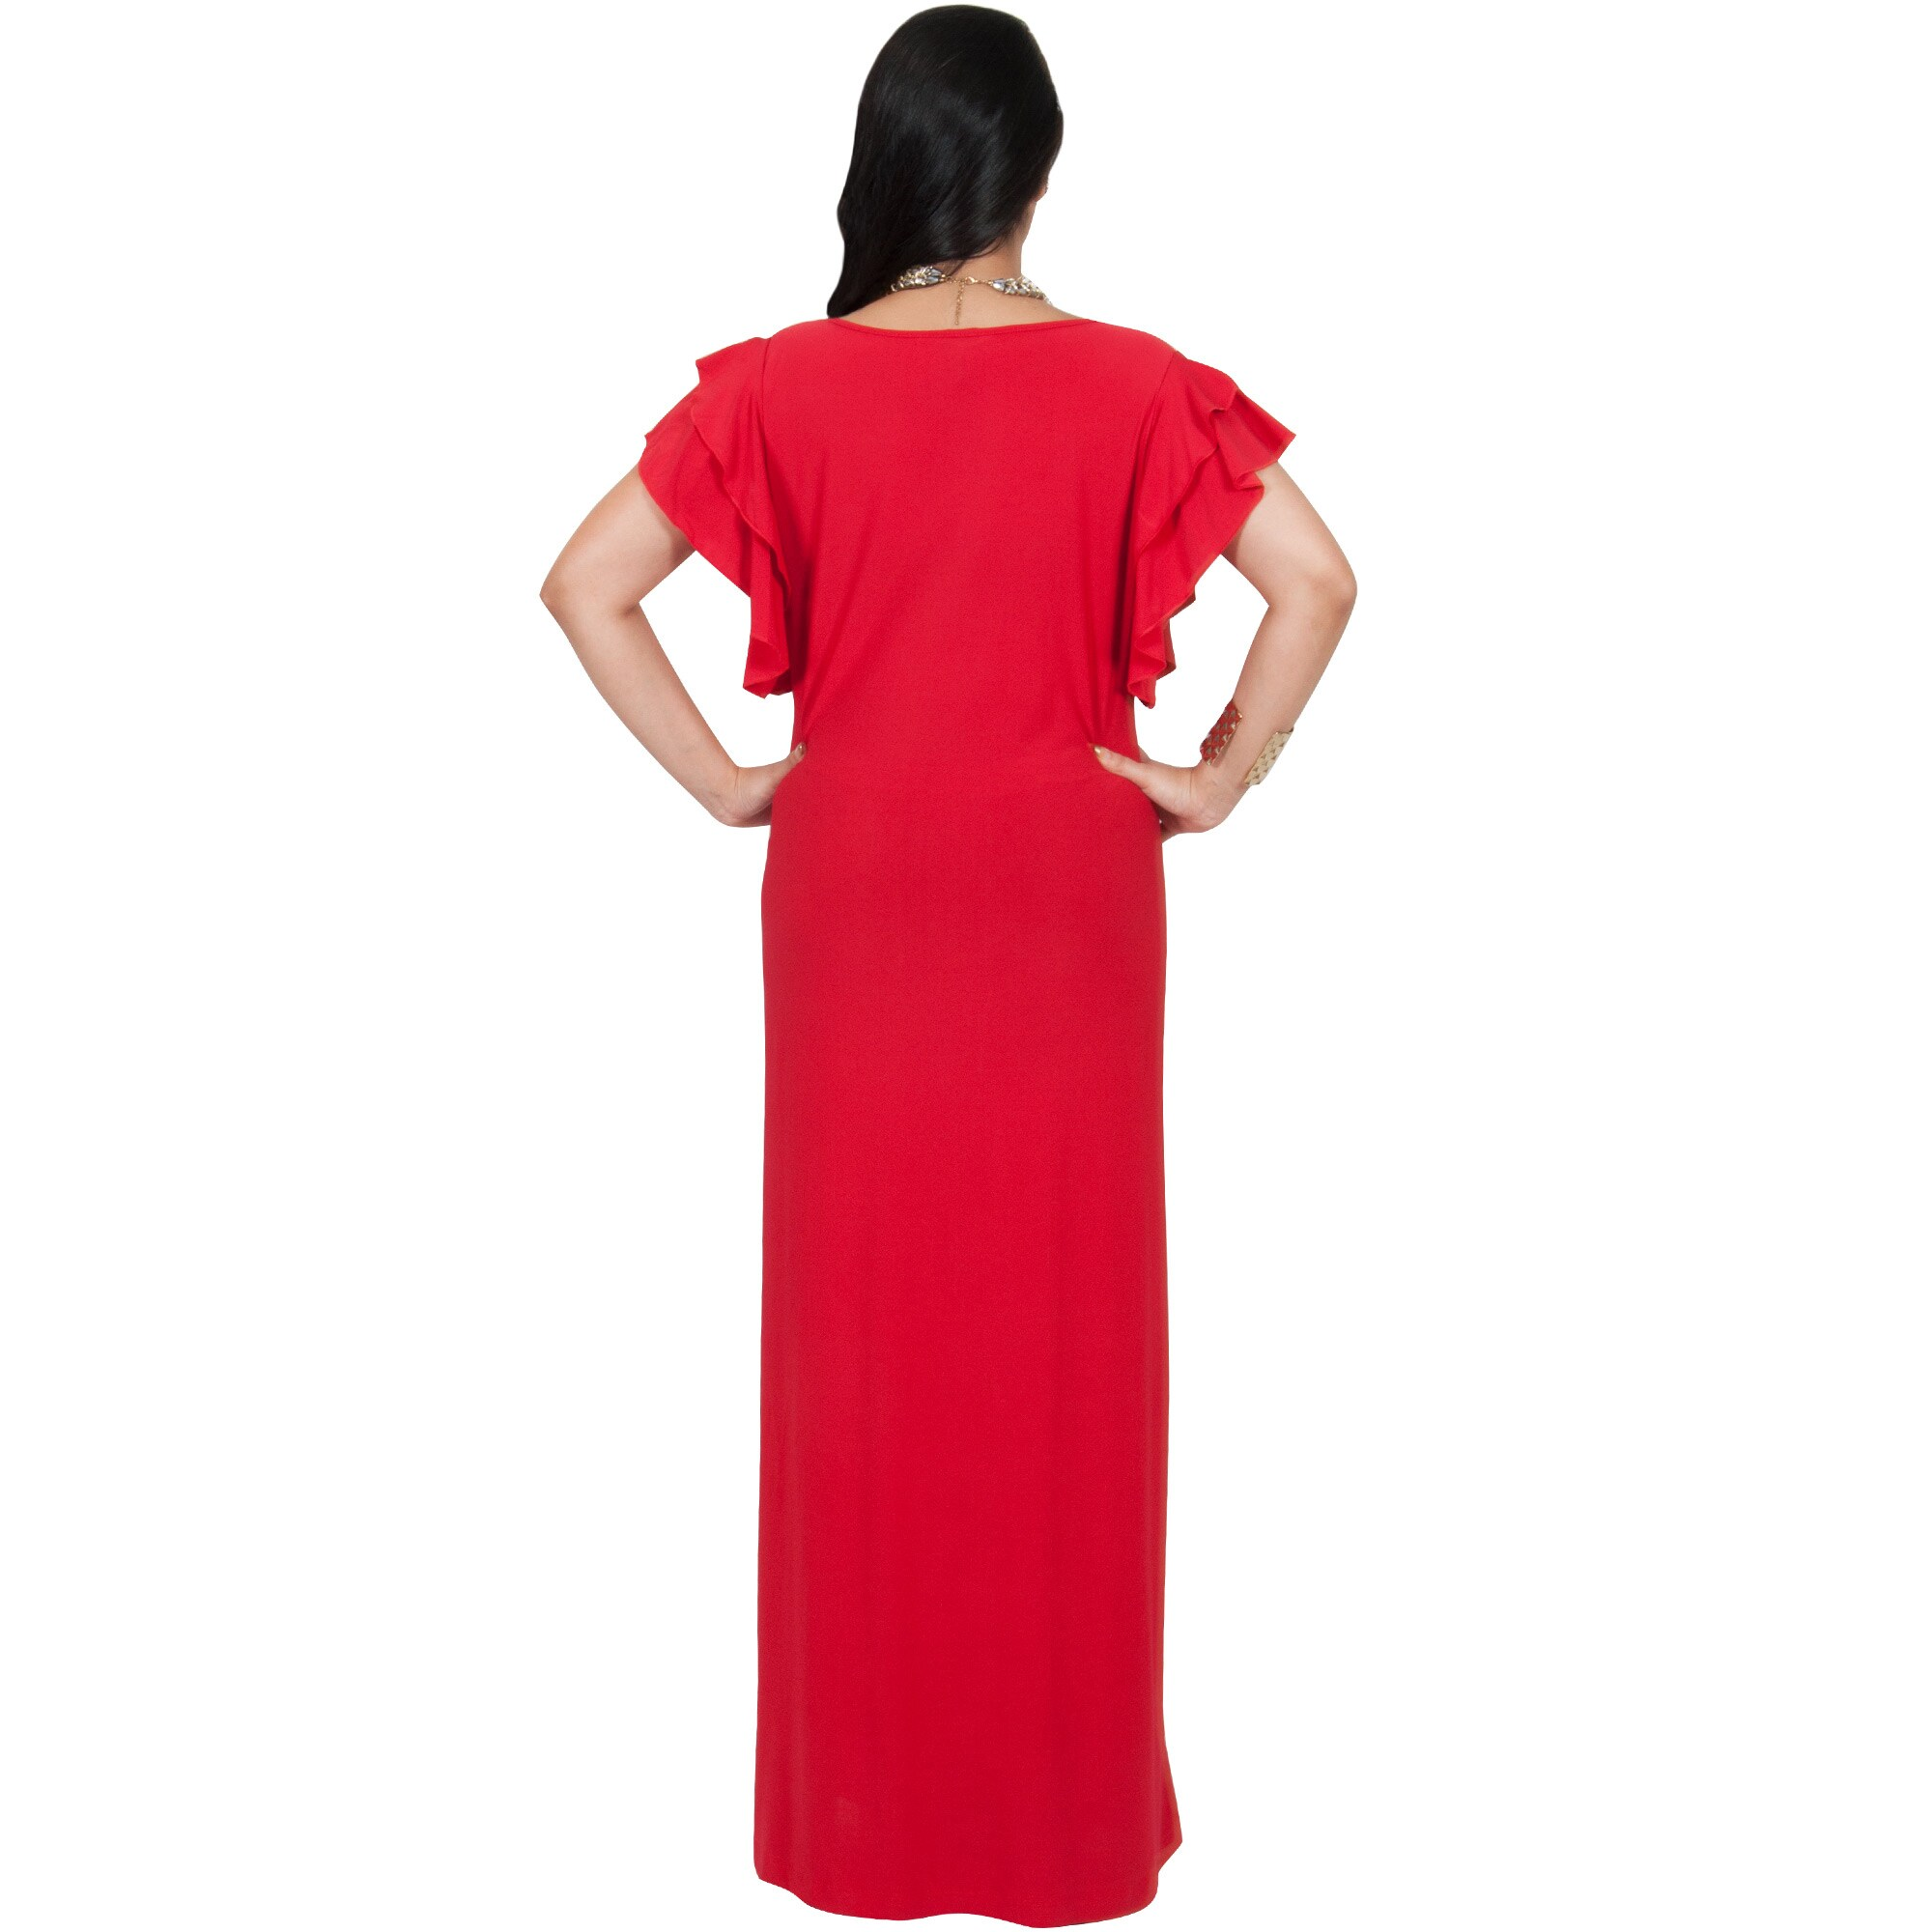 8facace85c28 Shop KOH KOH Women s Plus Size Cocktail Maxi Dress with Round Neck and  Ruffled Cap Sleeves - Free Shipping Today - Overstock - 11679668